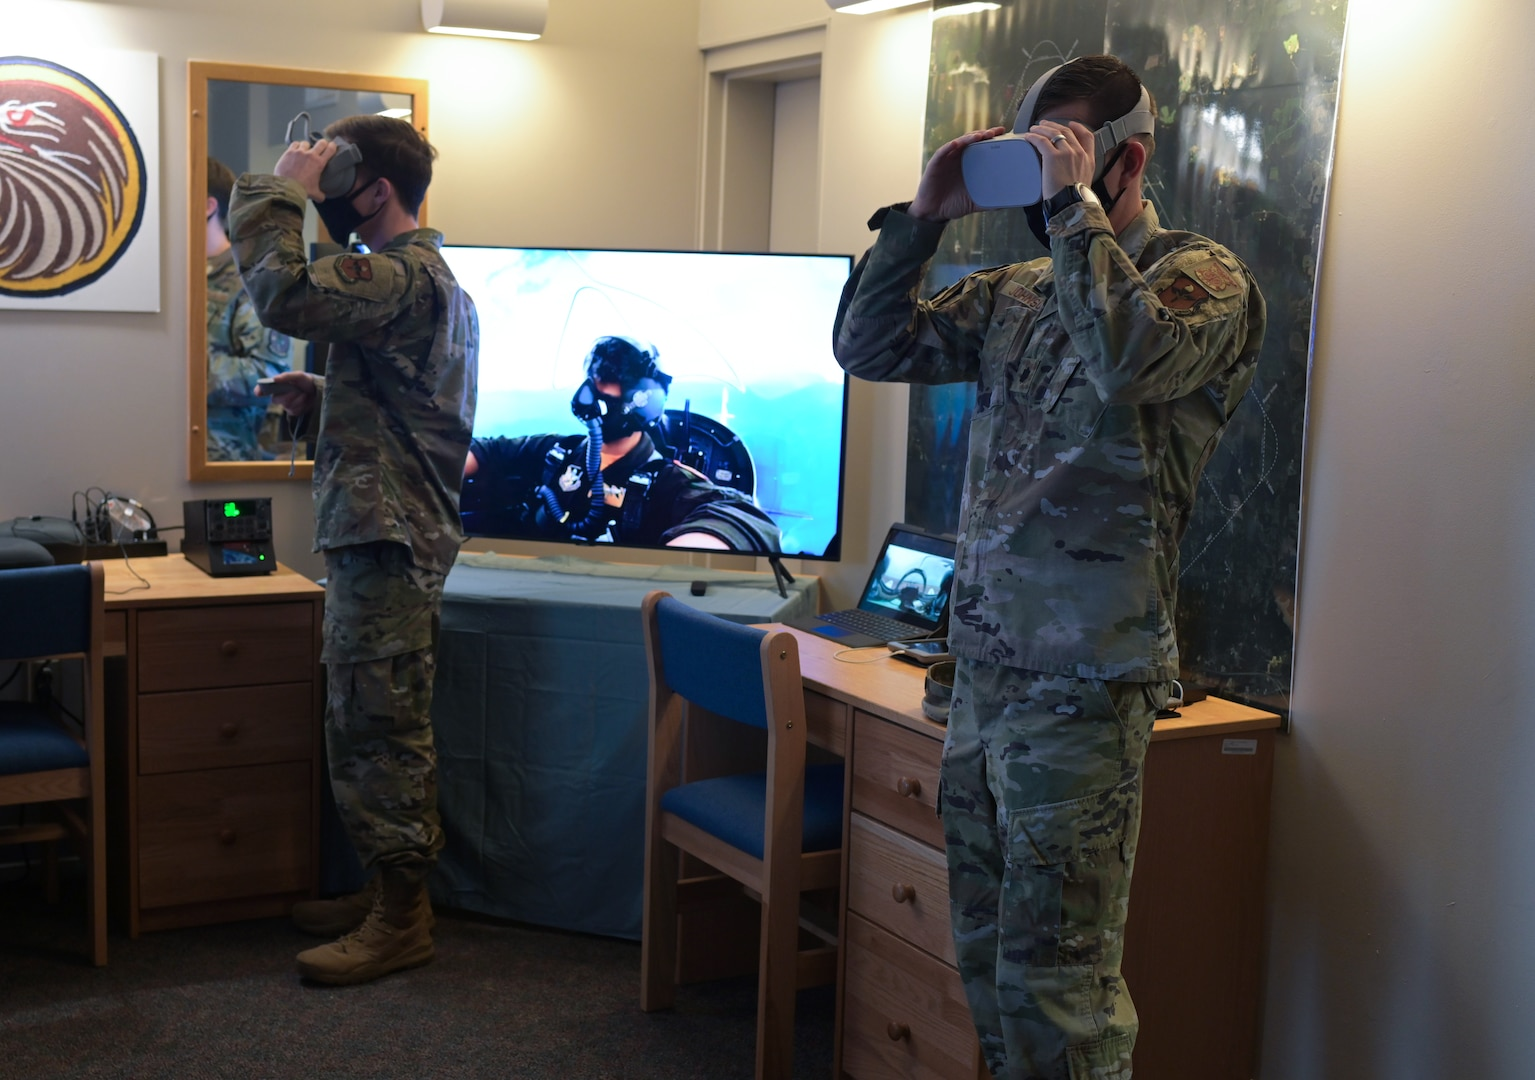 U.S. Air Force Lt. Col. Tyler Johnson, 14th Civil Engineer Squadron commander (Right), and 2nd Lt. Connor Spencer, 14th Student Squadron student pilot, test out a virtual reality training system recently installed for student pilots, Feb. 12, 2021, on Columbus Air Force Base, Miss. Student pilots assigned to the Specialized Undergraduate Pilot Training program will have 24 hour access to the training resources as part of the first step in a long term innovation and resource utilization plan. (U.S. Air Force photo by Senior Airman Jake Jacobsen)